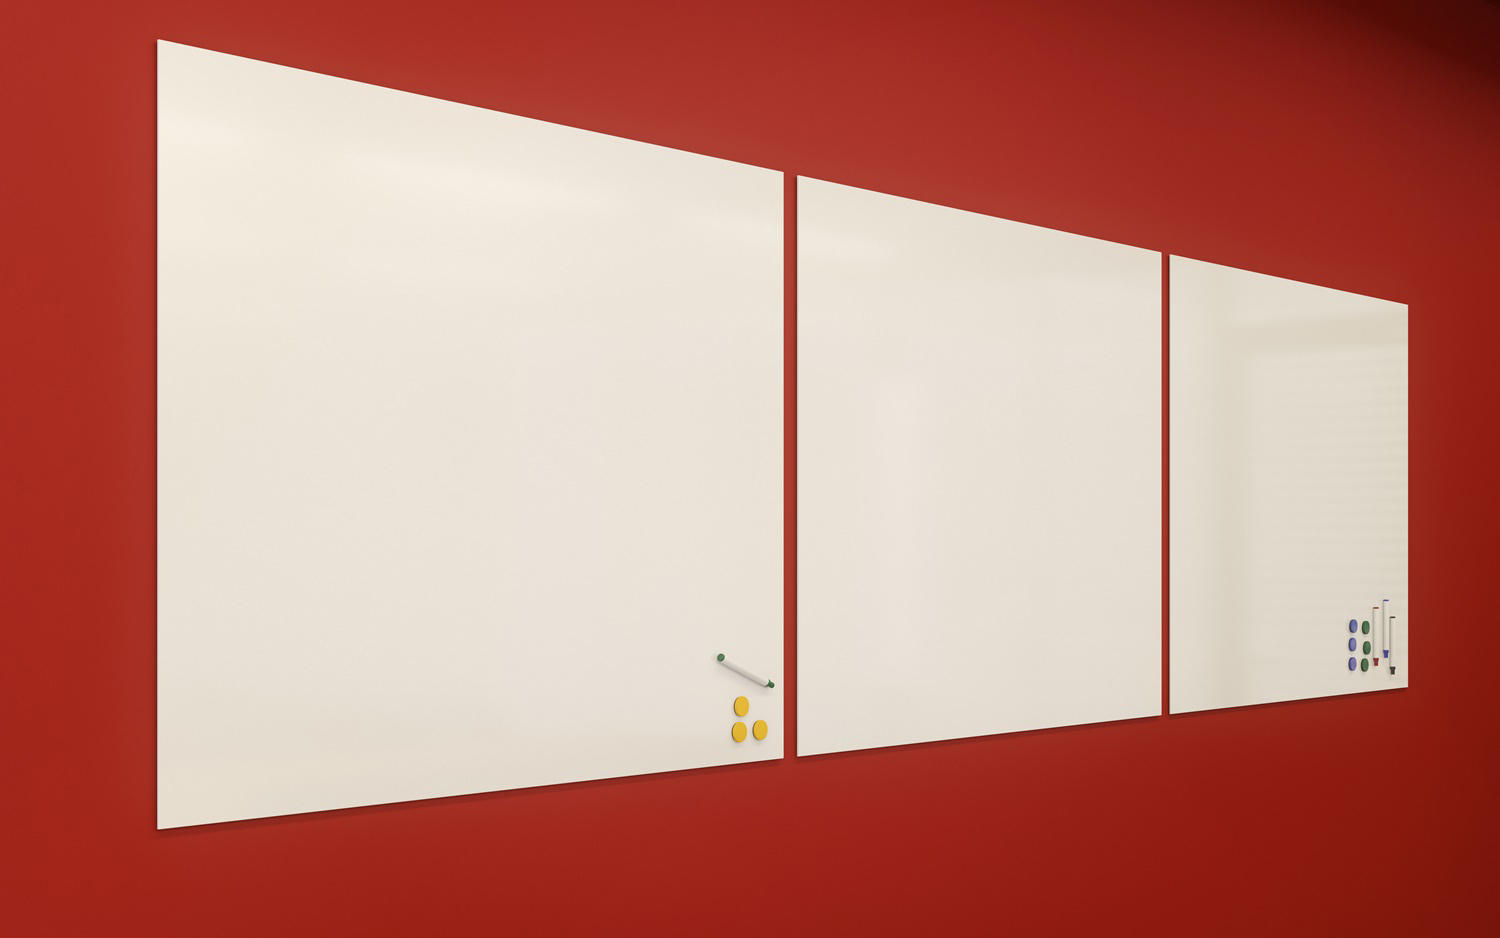 Bathroom Paneling Whiteboard 201x300.jpg adeco Whiteboard with SwissCDF by adeco | Flip charts - Writing boards